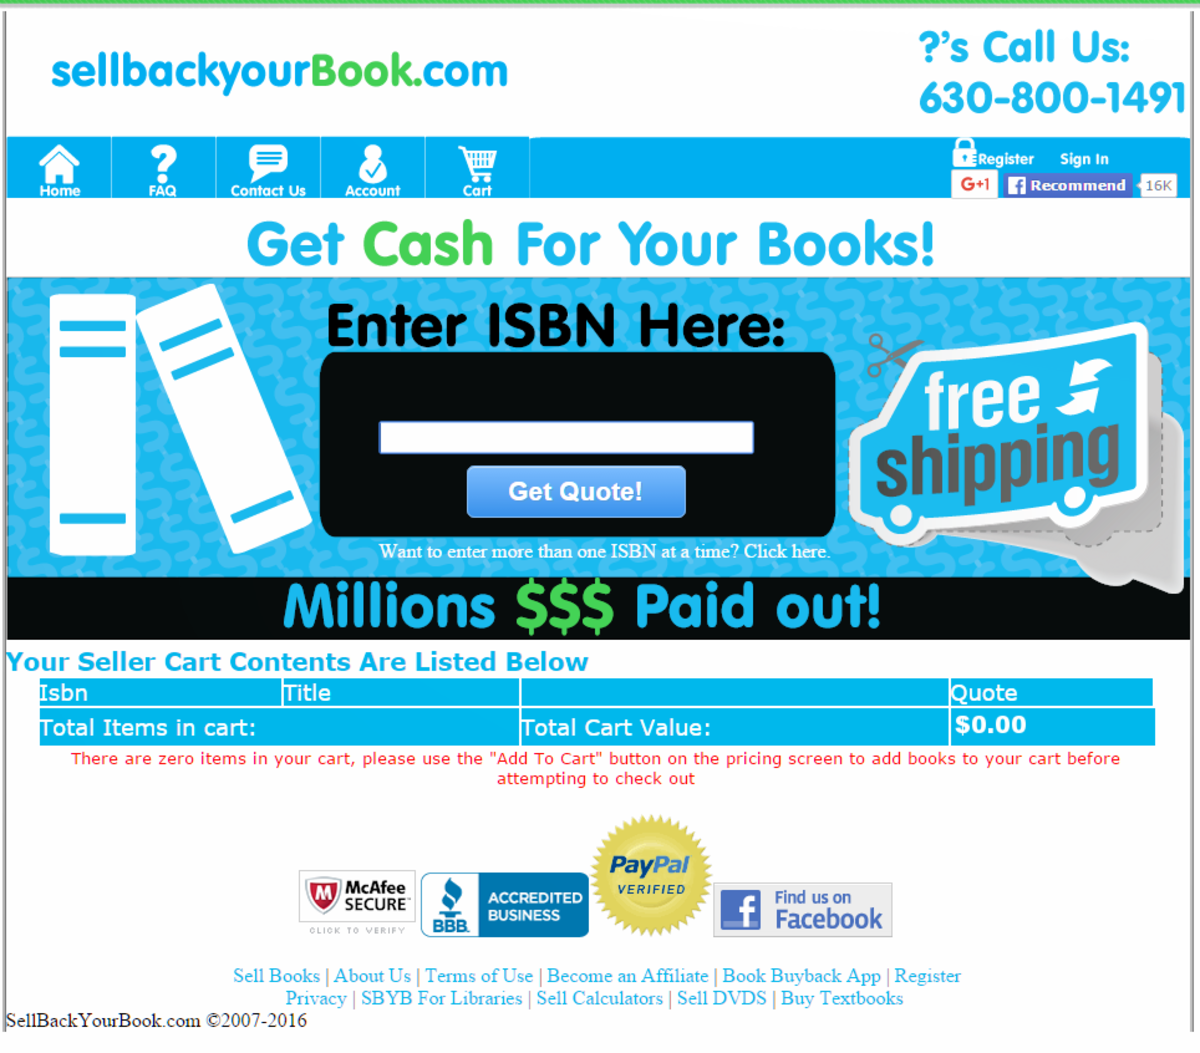 This book buyback website offers prompt payment, courteous customer service, and a low minimum buyback to qualify for free shipping.  However, they may not always be the highest bidder on your used books.